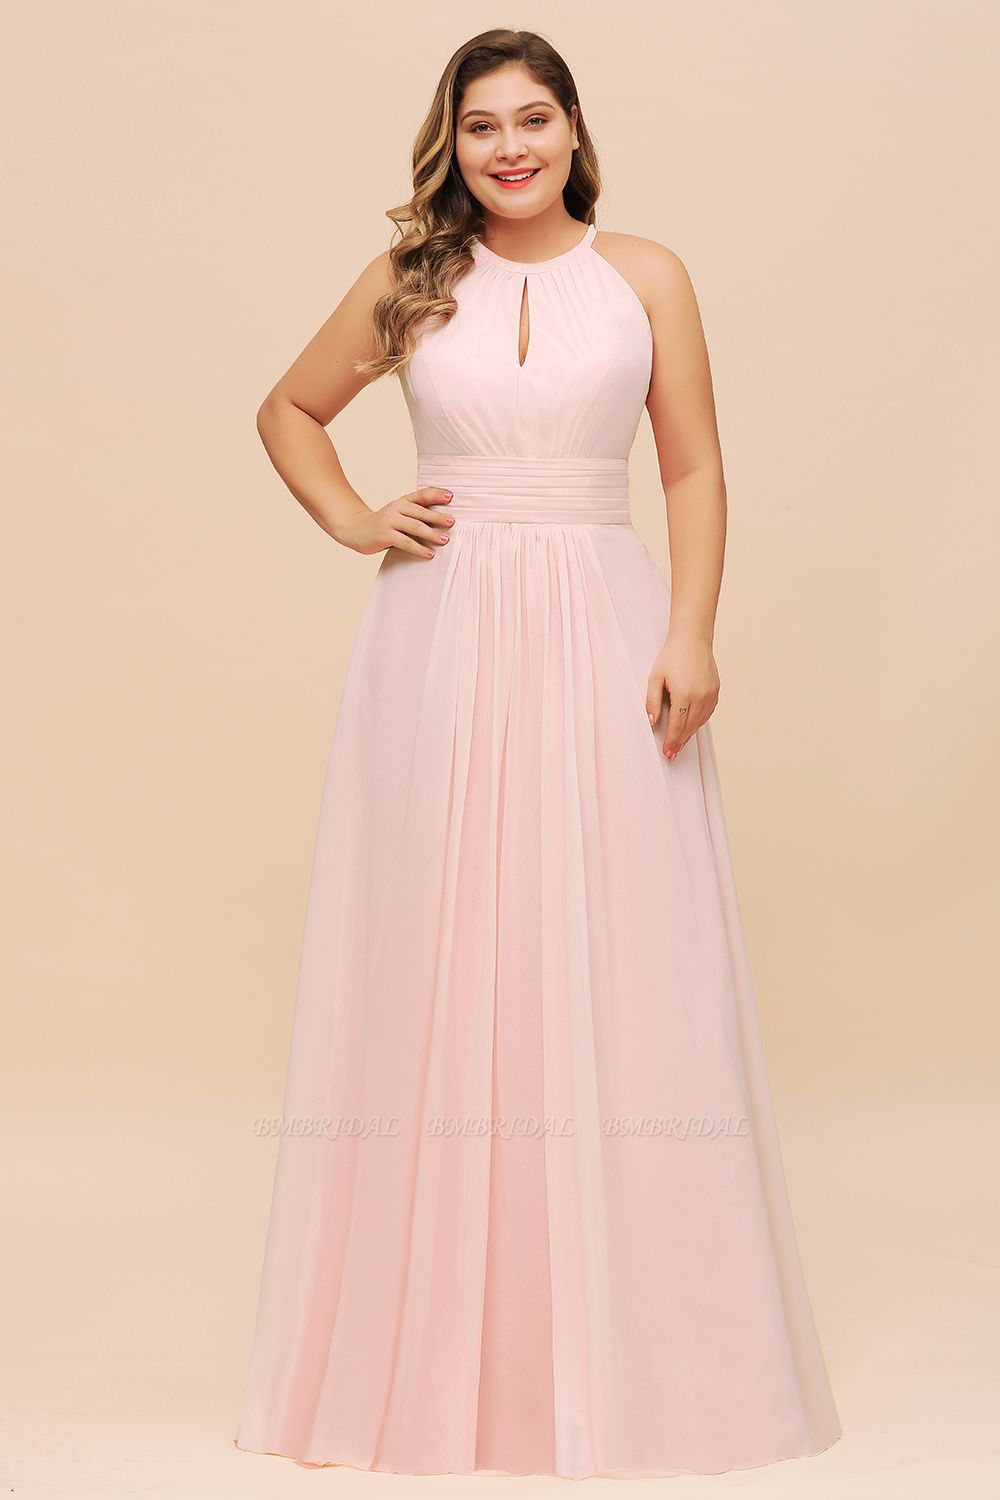 BMbridal Affordable Plus Size Chiffon Round Neck Pink Bridesmaid Dress